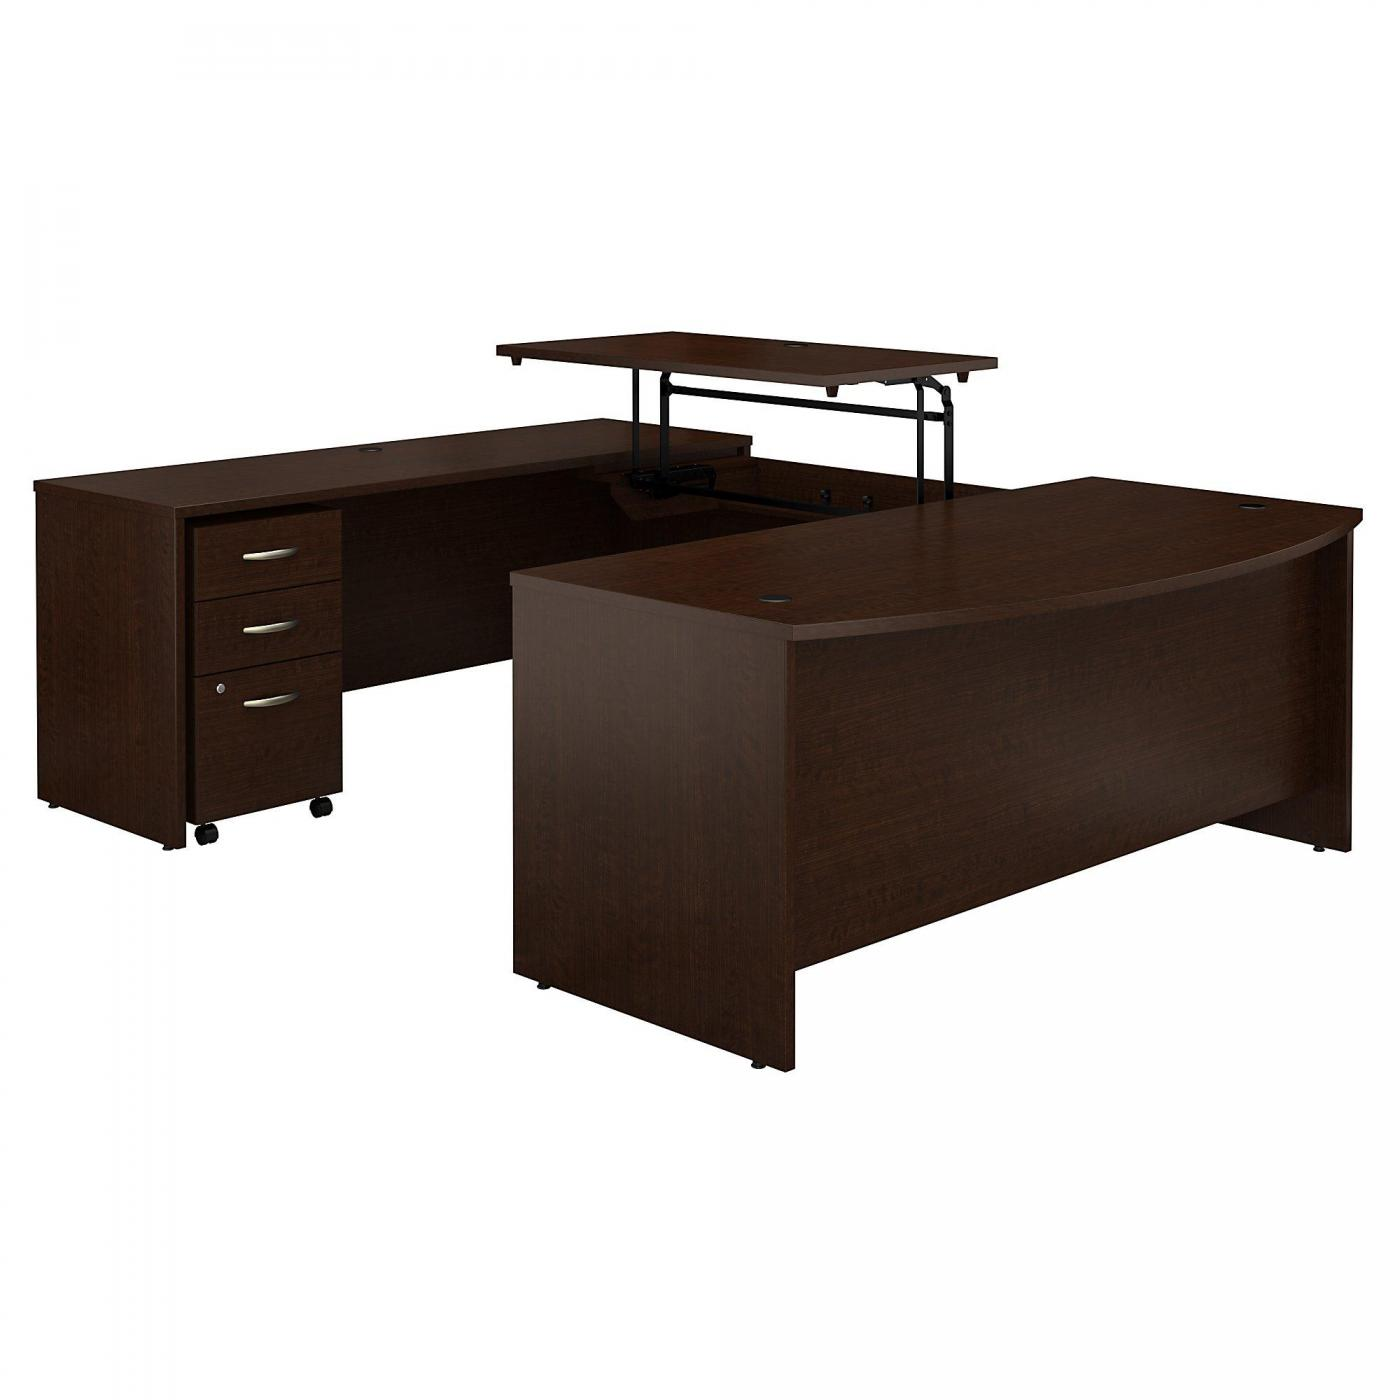 </b></font><b>BUSH BUSINESS FURNITURE SERIES C 72W X 36D 3 POSITION SIT TO STAND BOW FRONT U SHAPED DESK WITH MOBILE FILE CABINET. FREE SHIPPING. VIDEO:</b></font>  VIDEO BELOW. <p>RATING:&#11088;&#11088;&#11088;&#11088;</b></font></b>